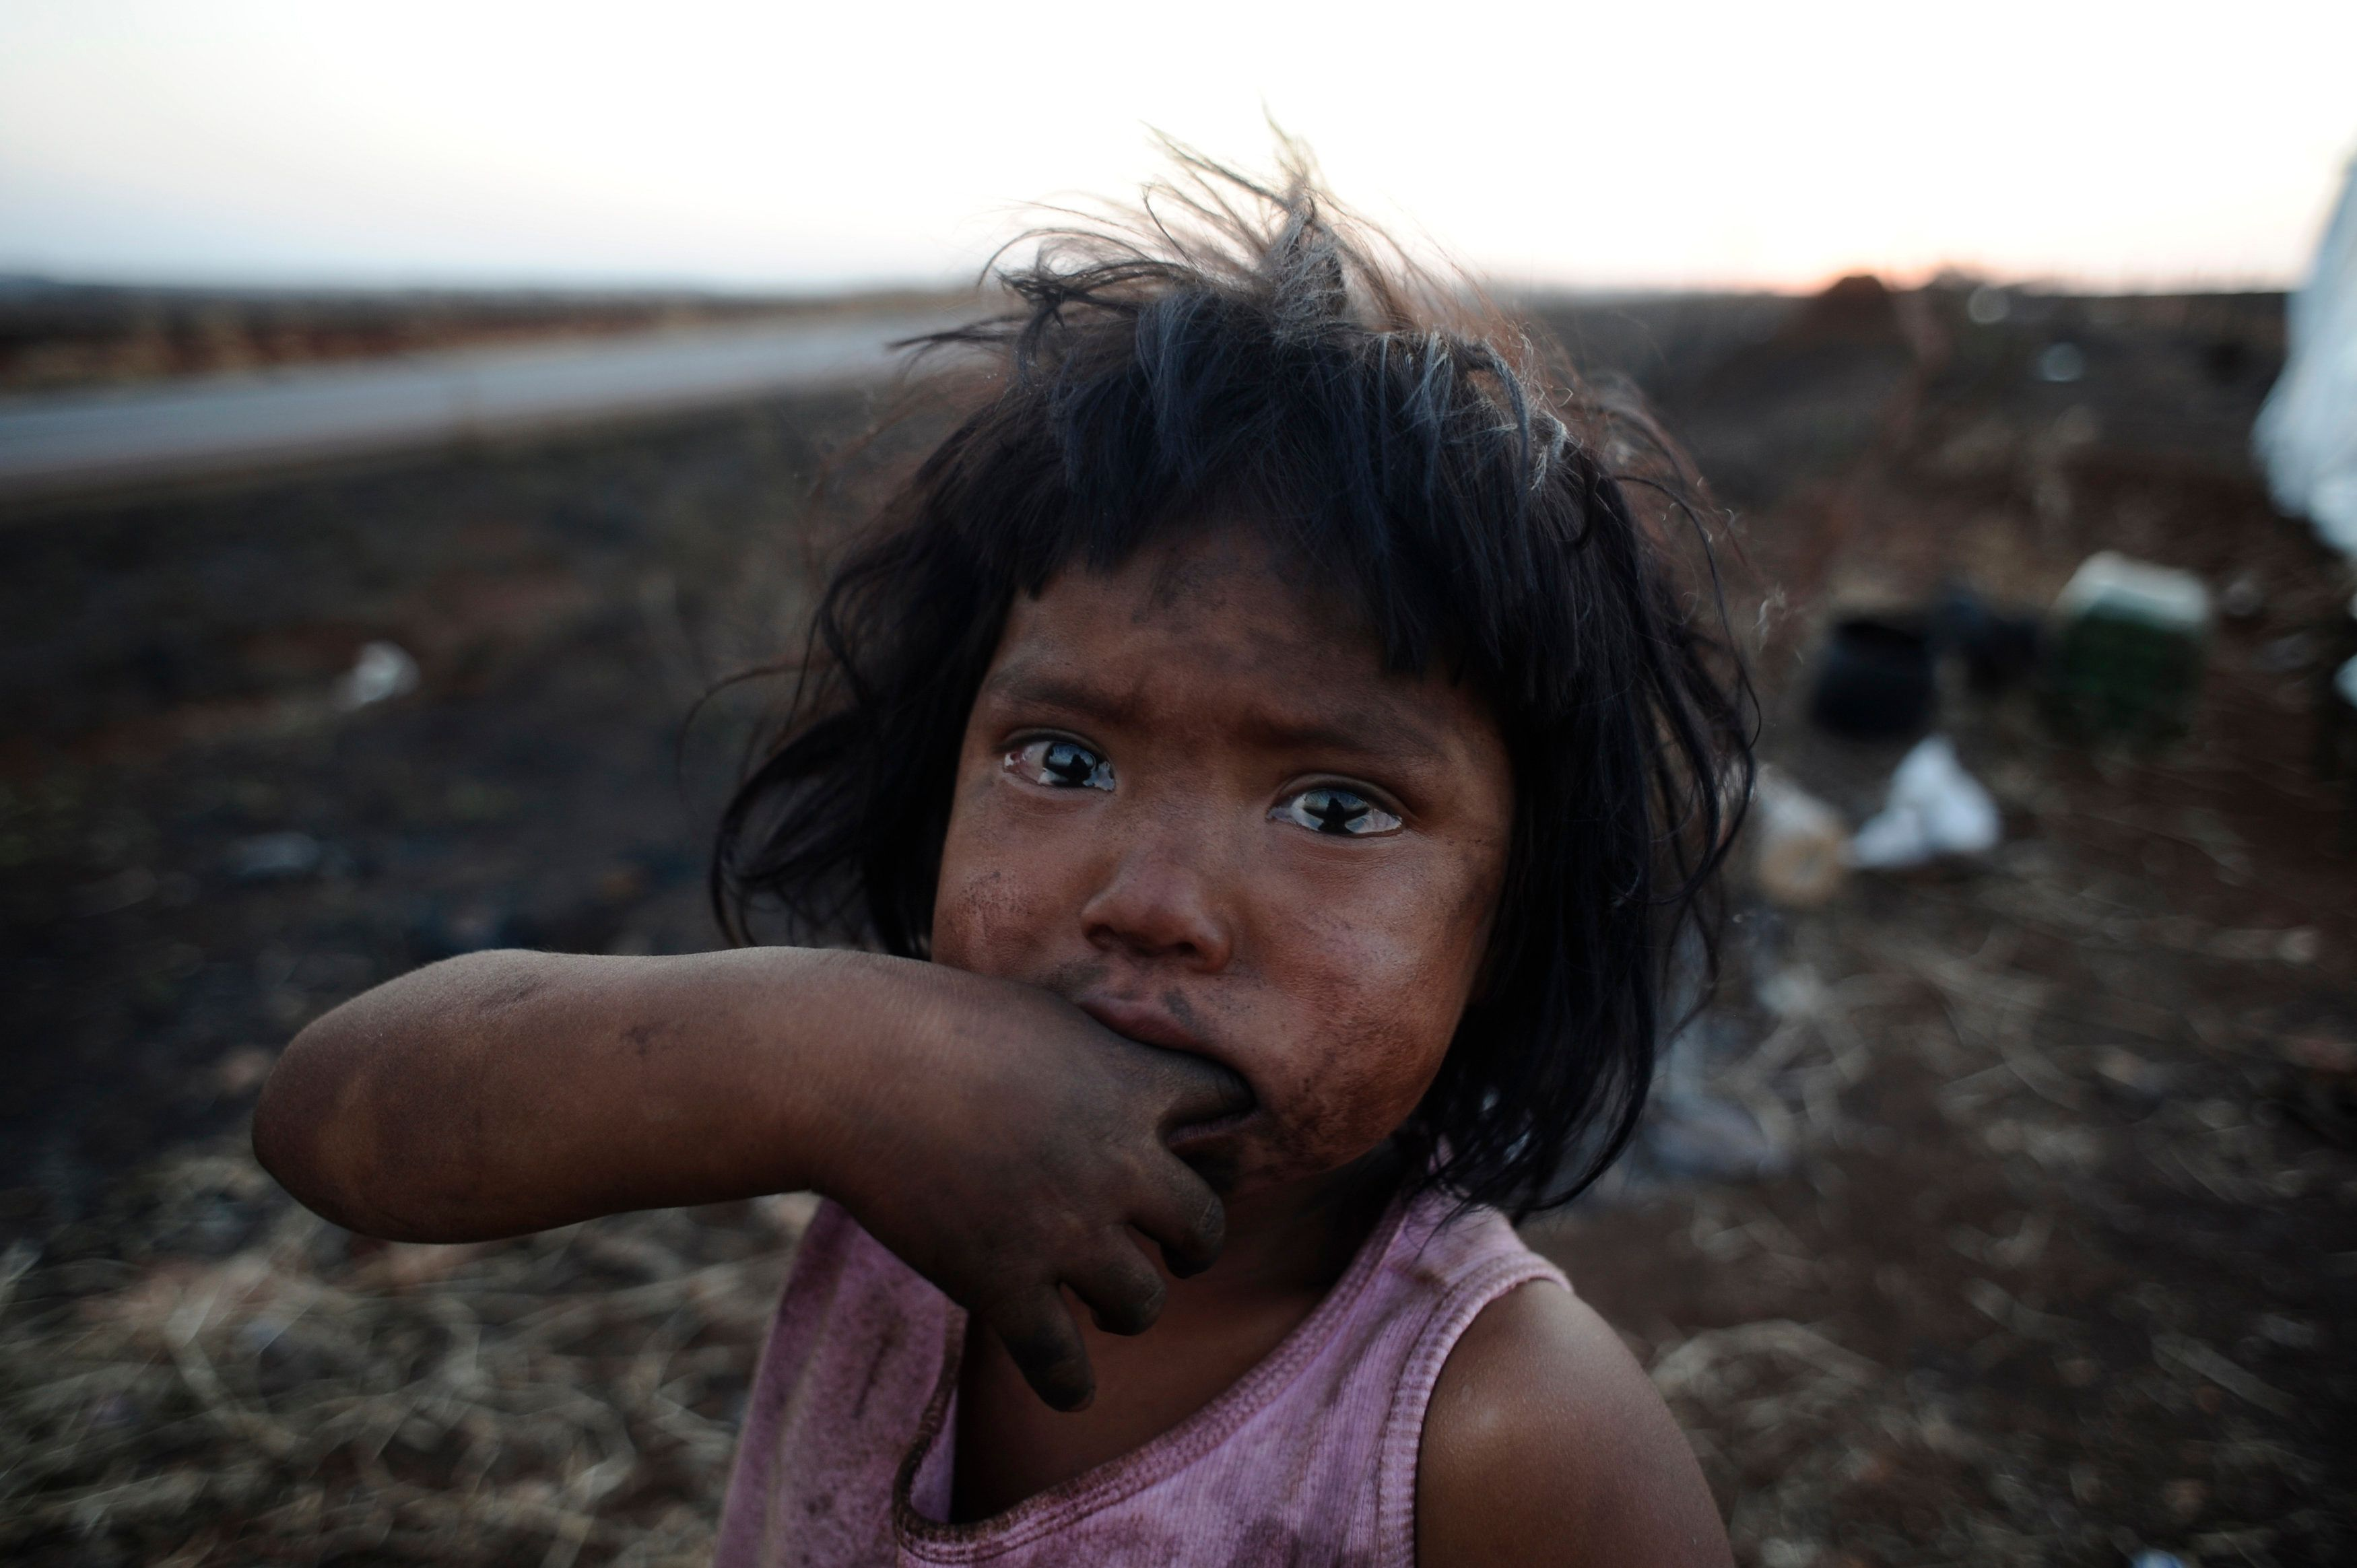 Indigenous People Fight For Their Rights. Governments And Businesses Call Them